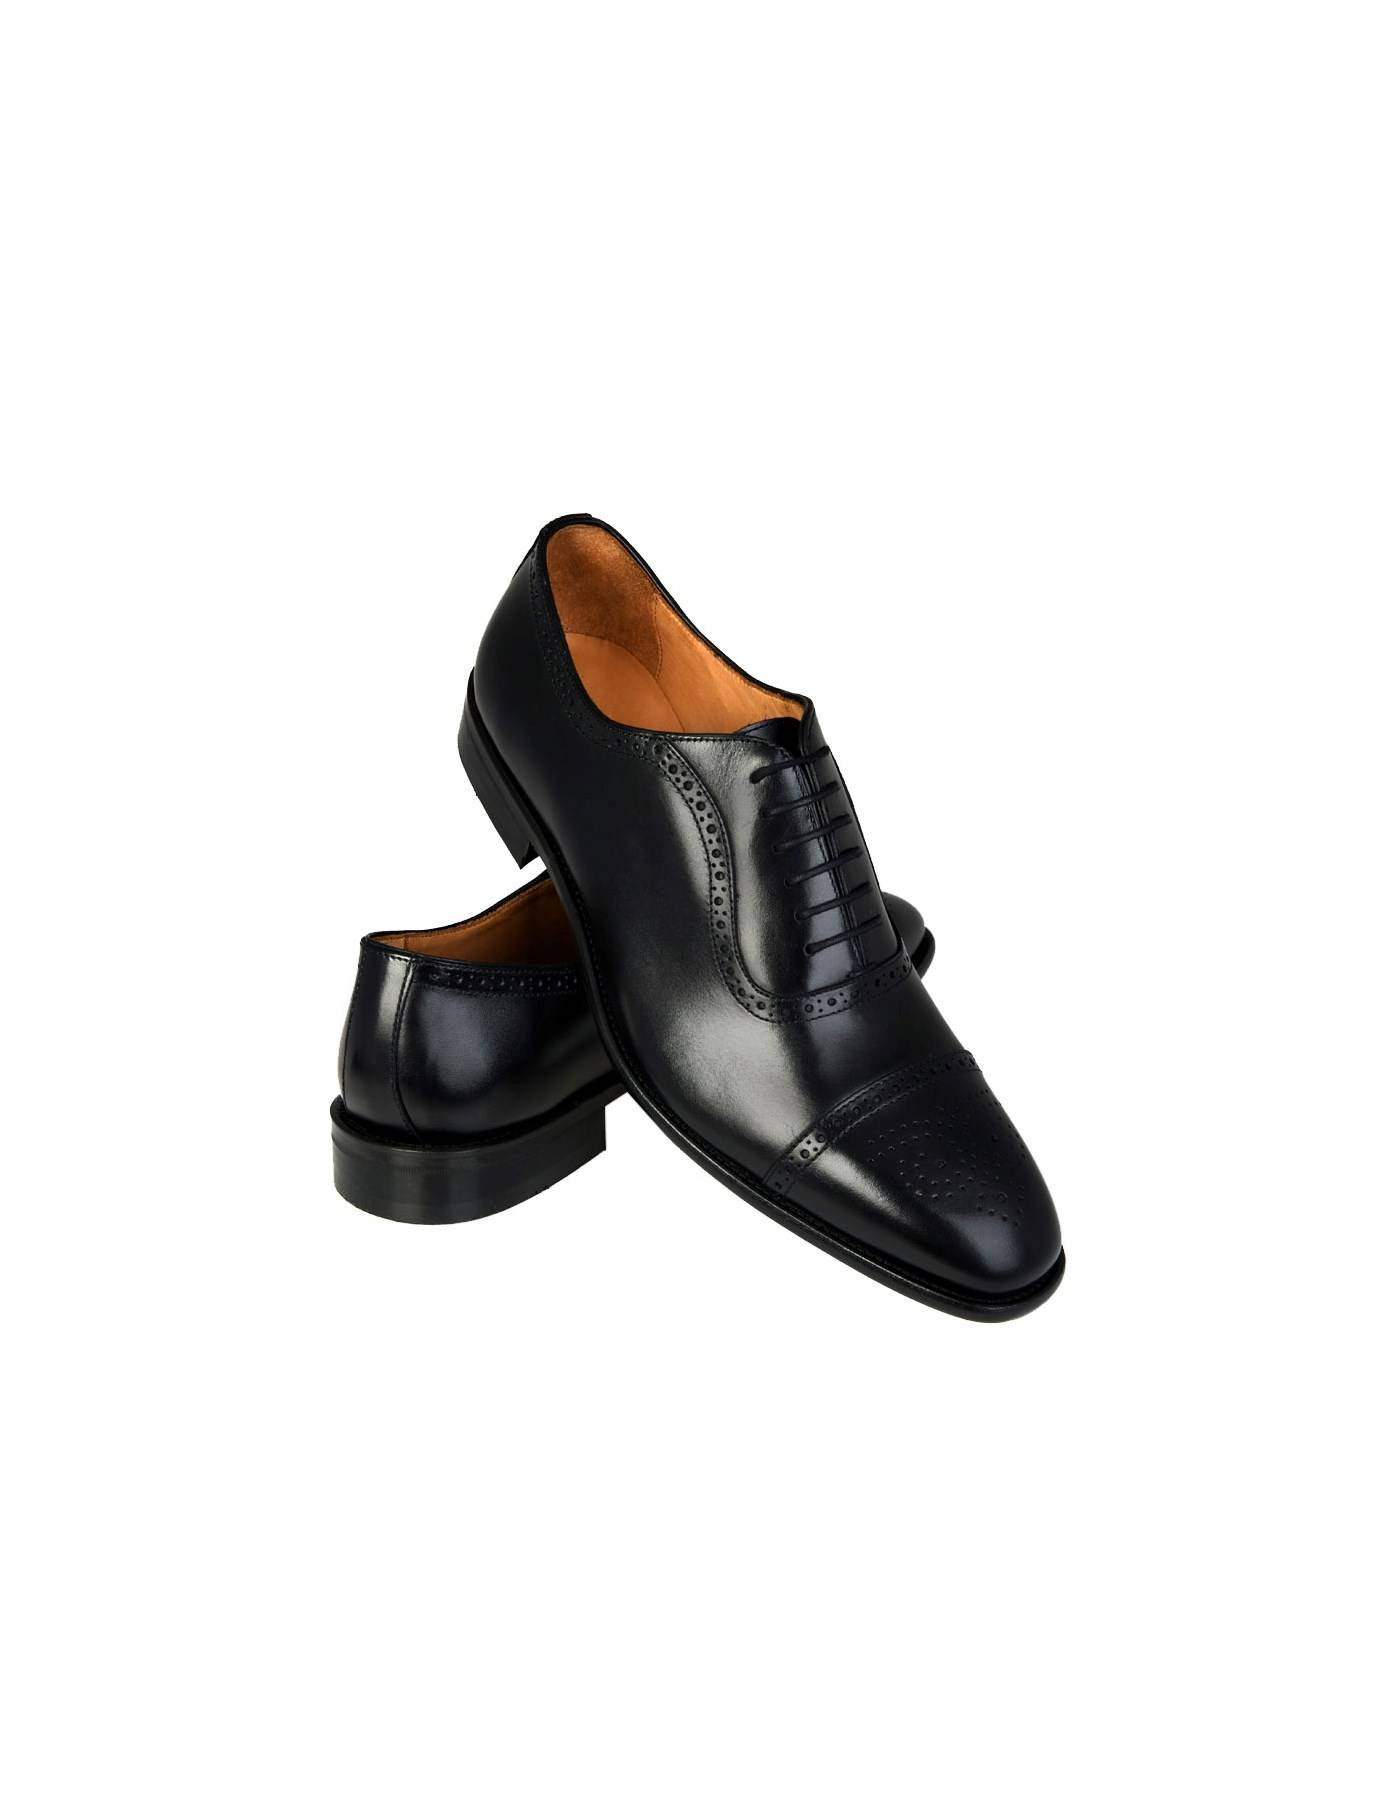 Hawes & Curtis Men's Leather Toe Cap Semi Brogue Shoes in Black Size 9